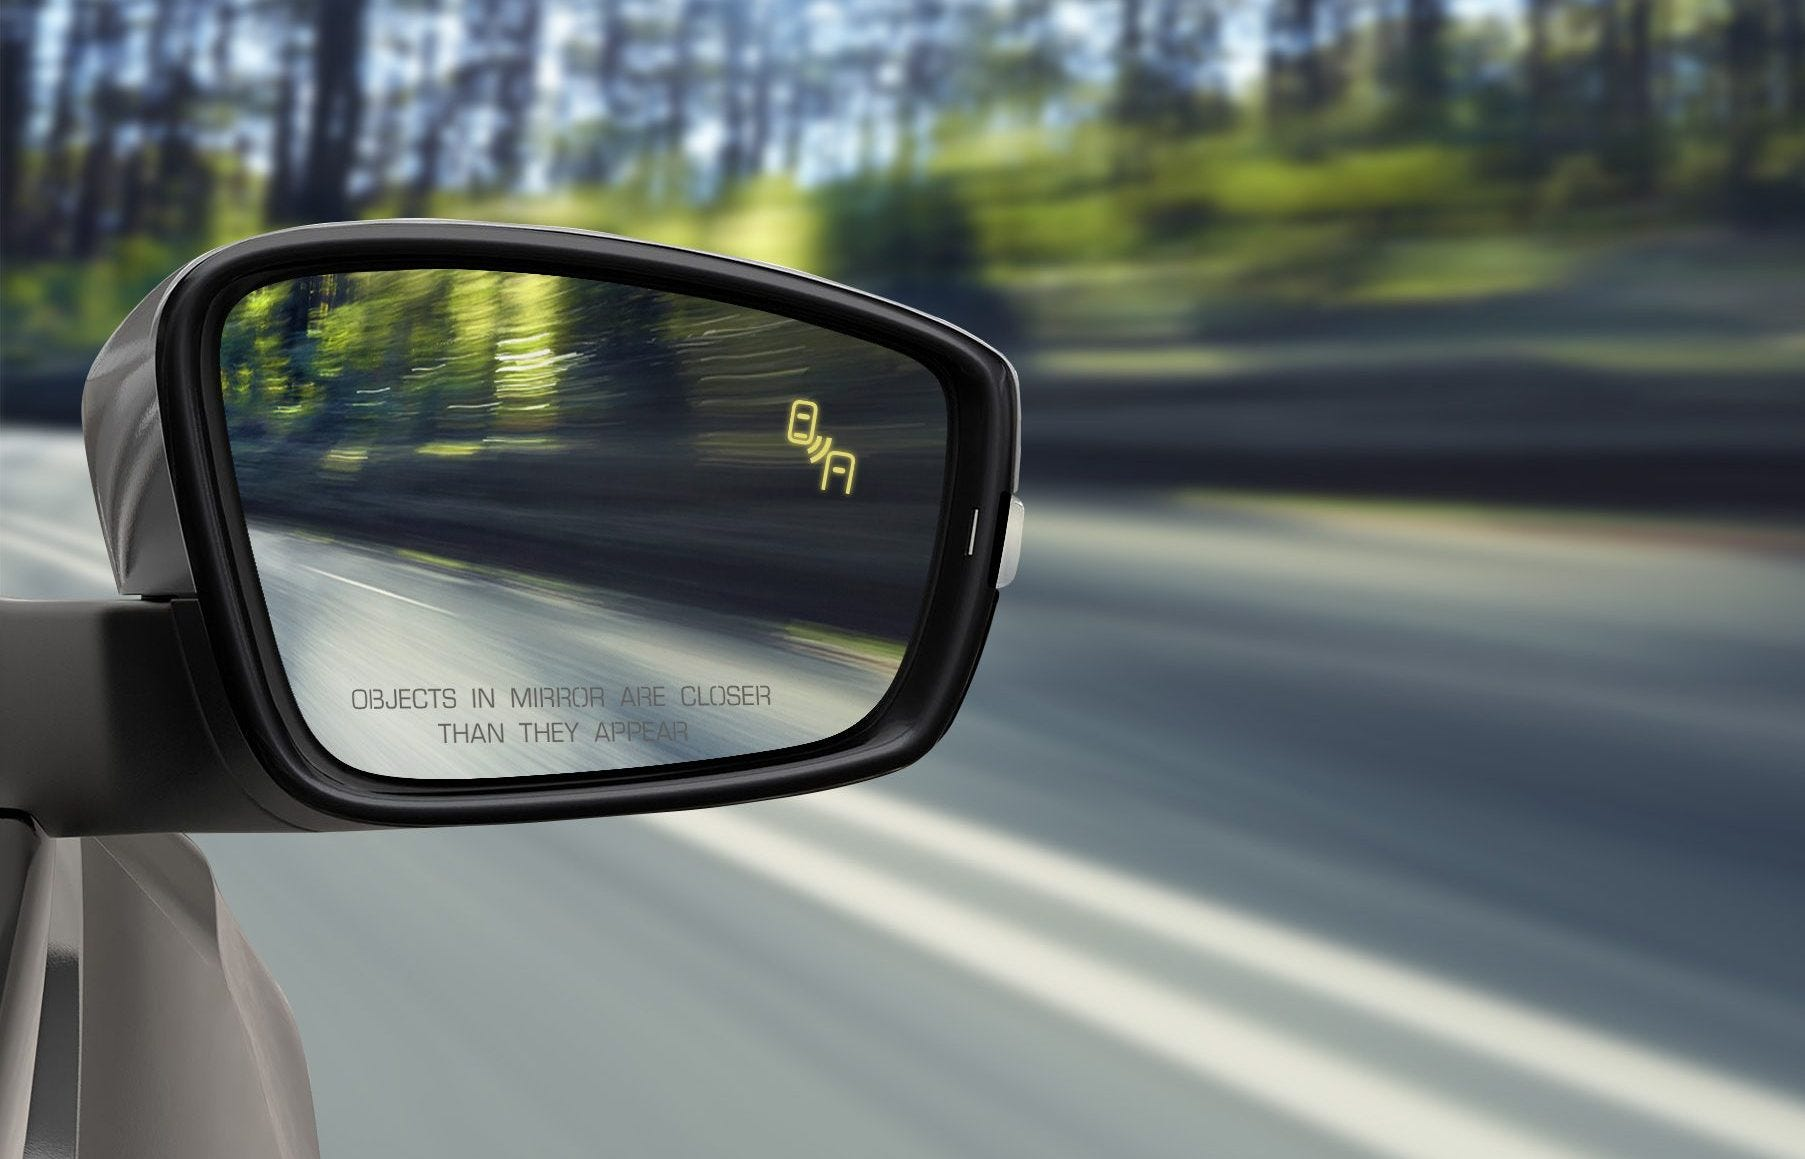 Toyota Camry: Conditions under which the Blind Spot Monitor will not detect a vehicle